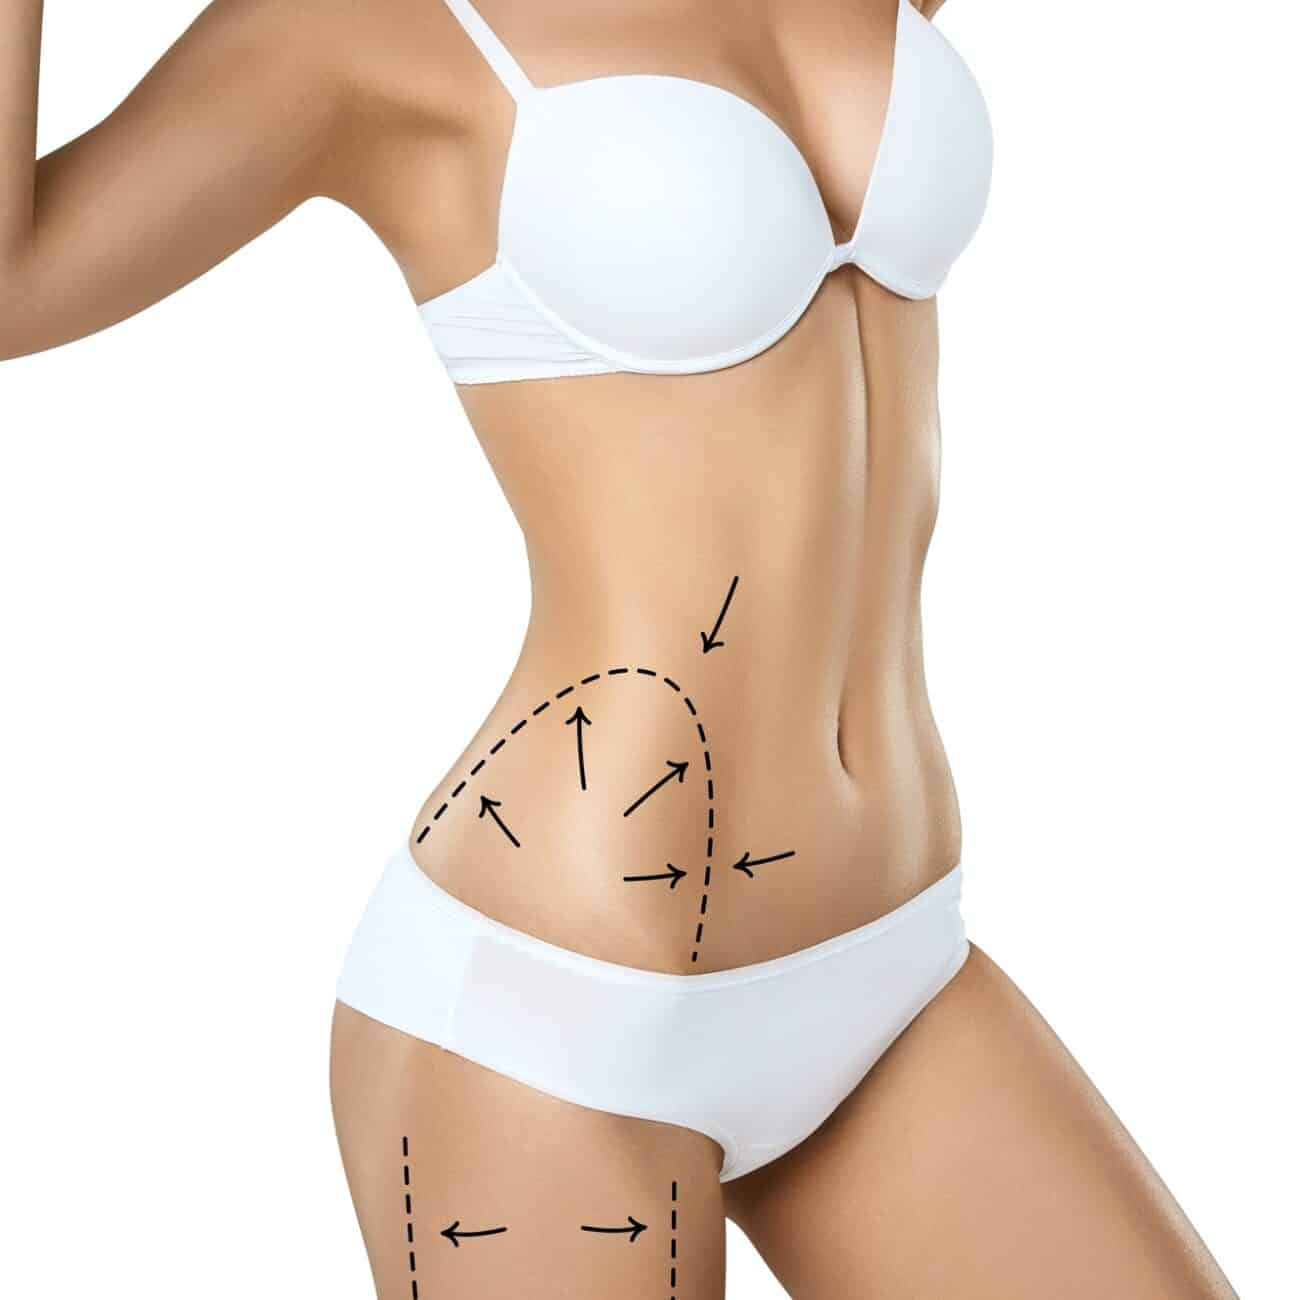 Woman torso in underwear with medical marks for plastic surgery or liposuction